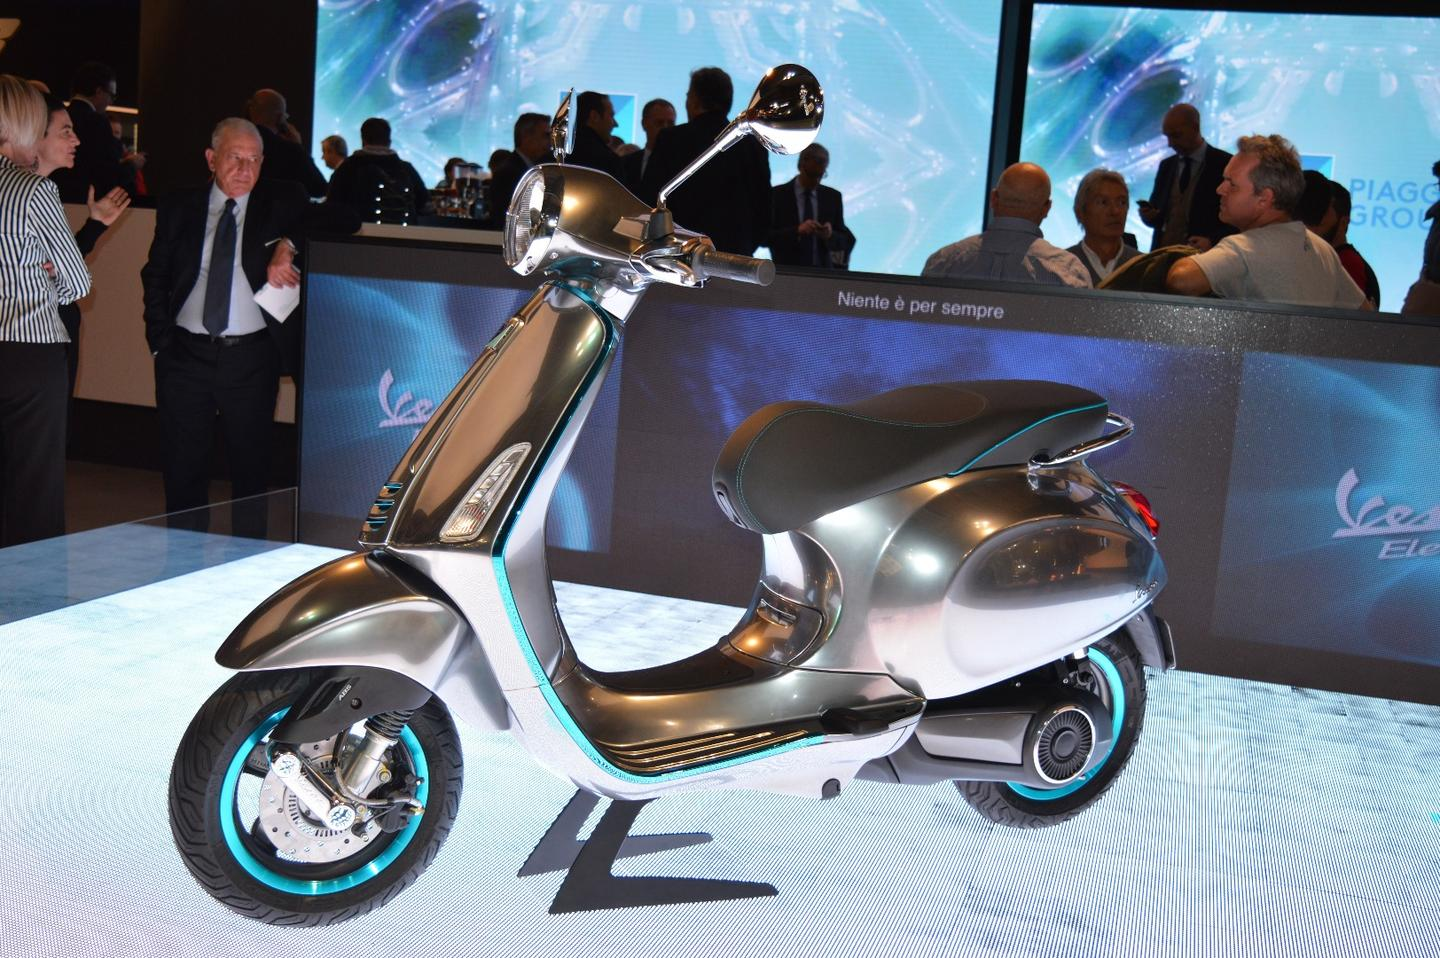 Little detail has been revealed about the upcoming Vespa Elettrica electric scooter